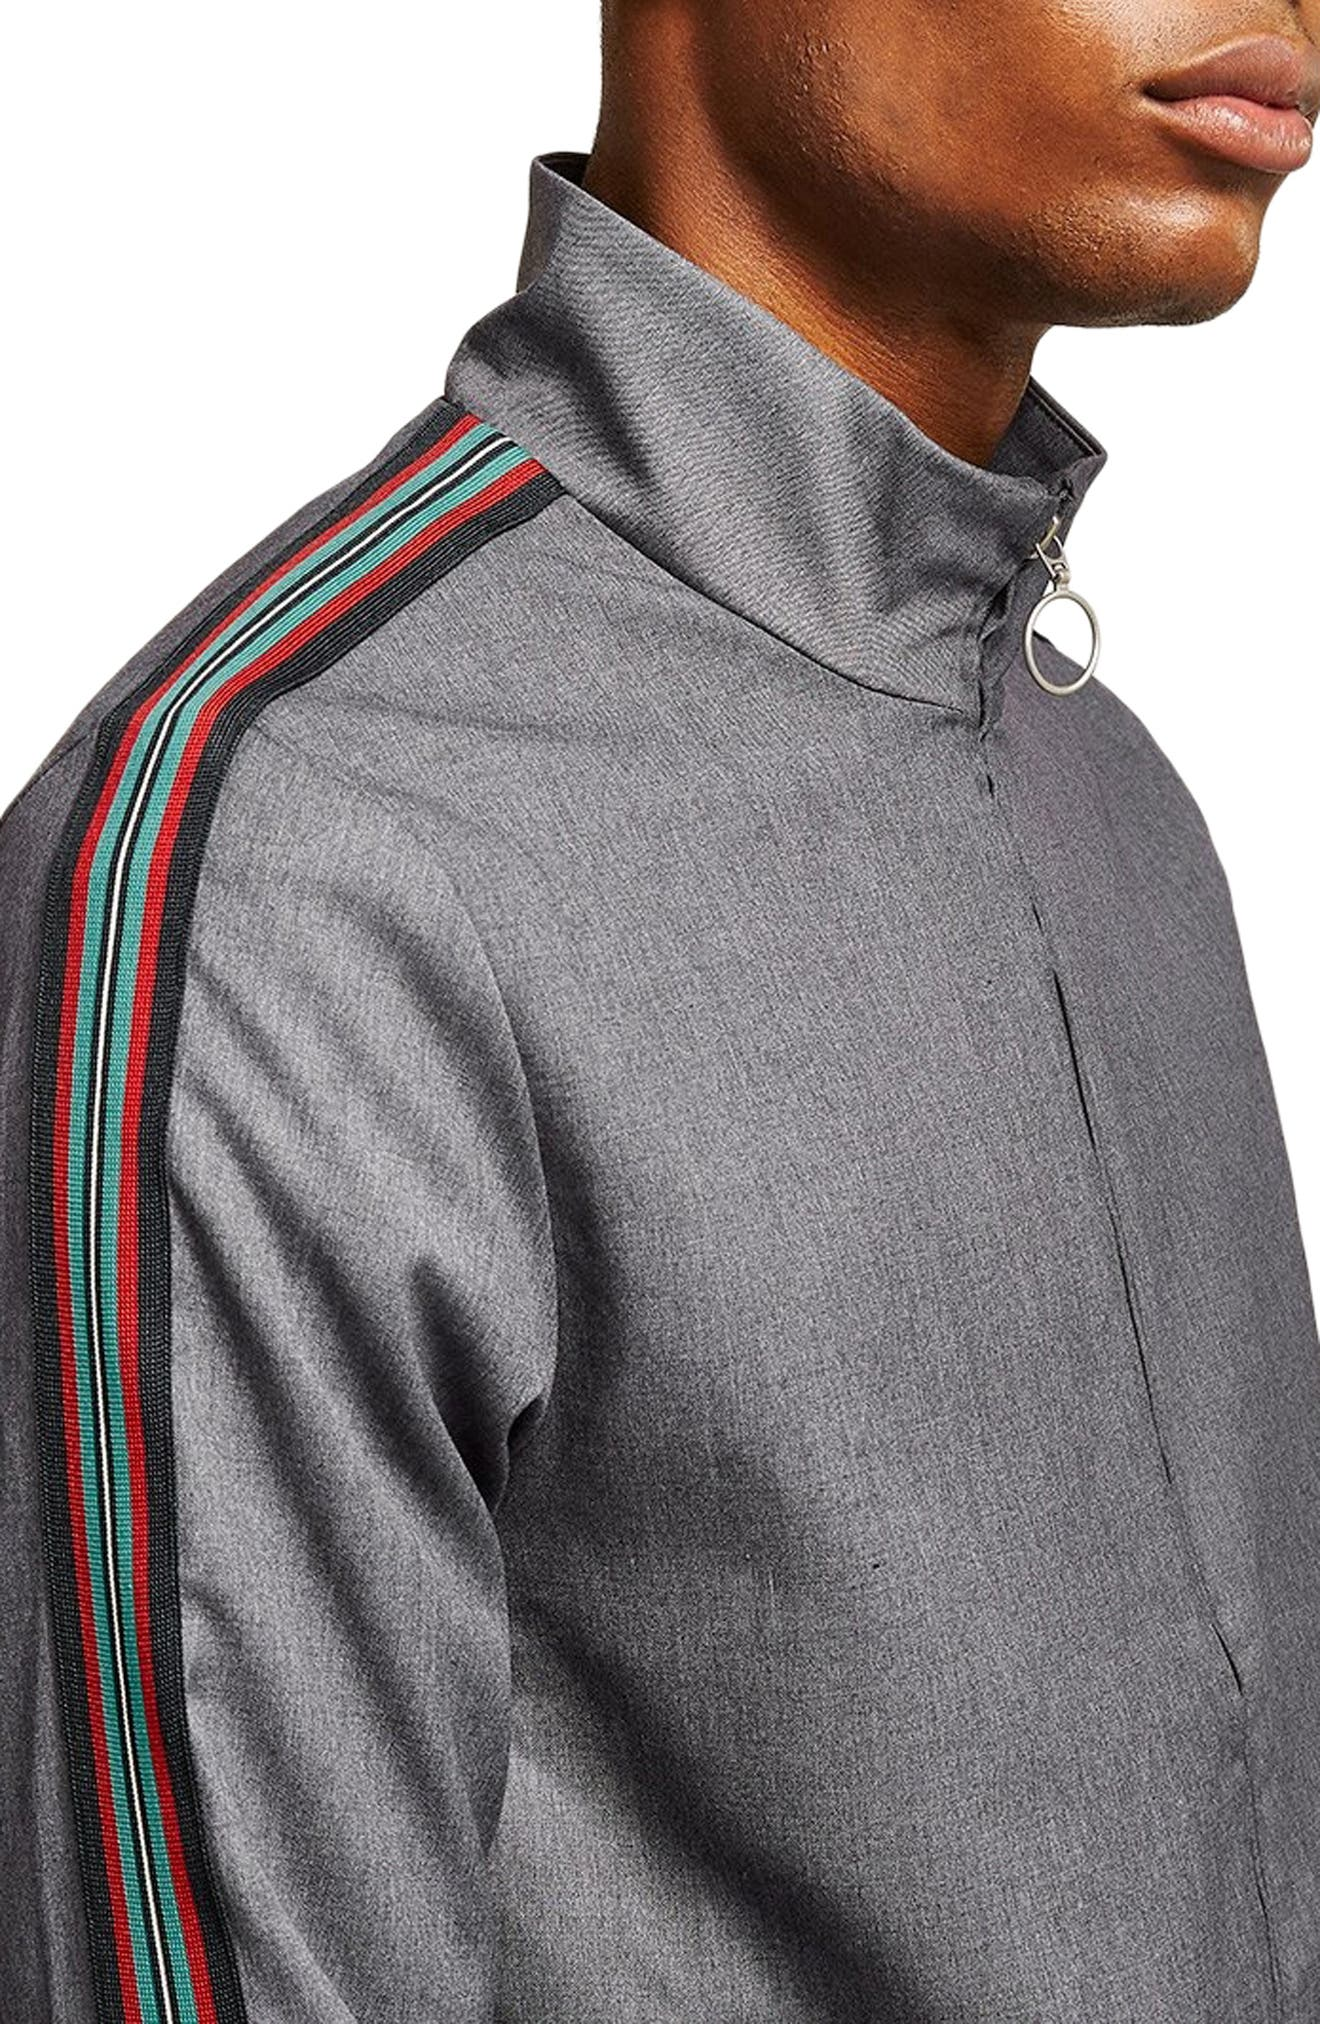 Mélange Stripe Track Jacket,                             Alternate thumbnail 4, color,                             GREY MULTI